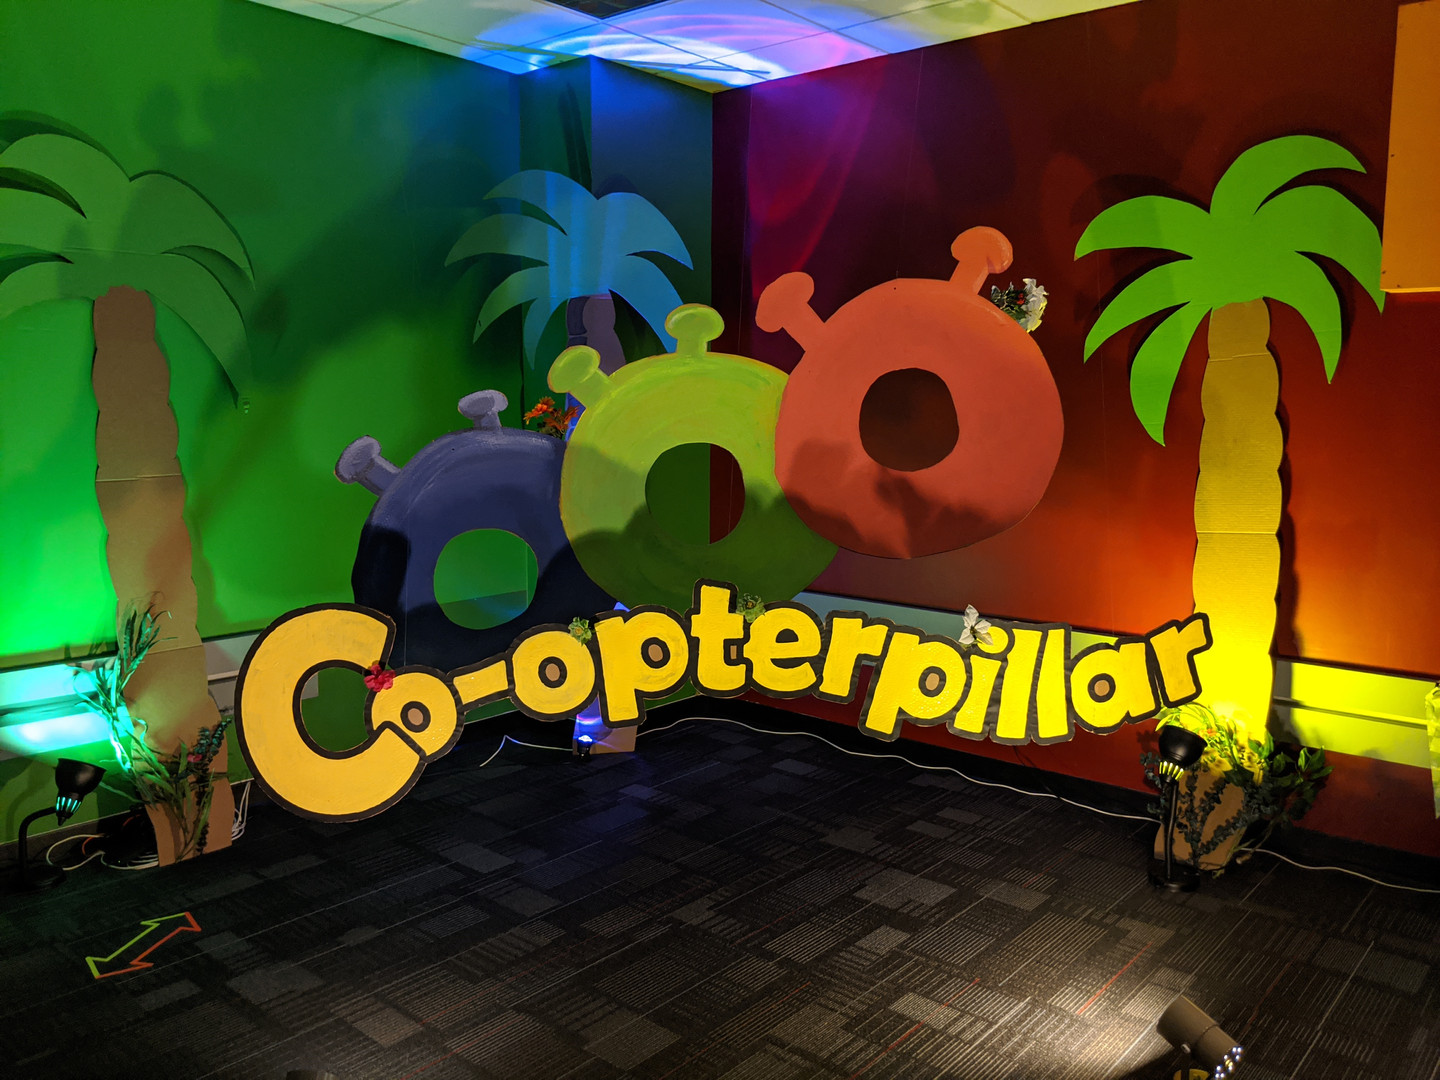 Co-opterpillar - Festival Room_4.jpg